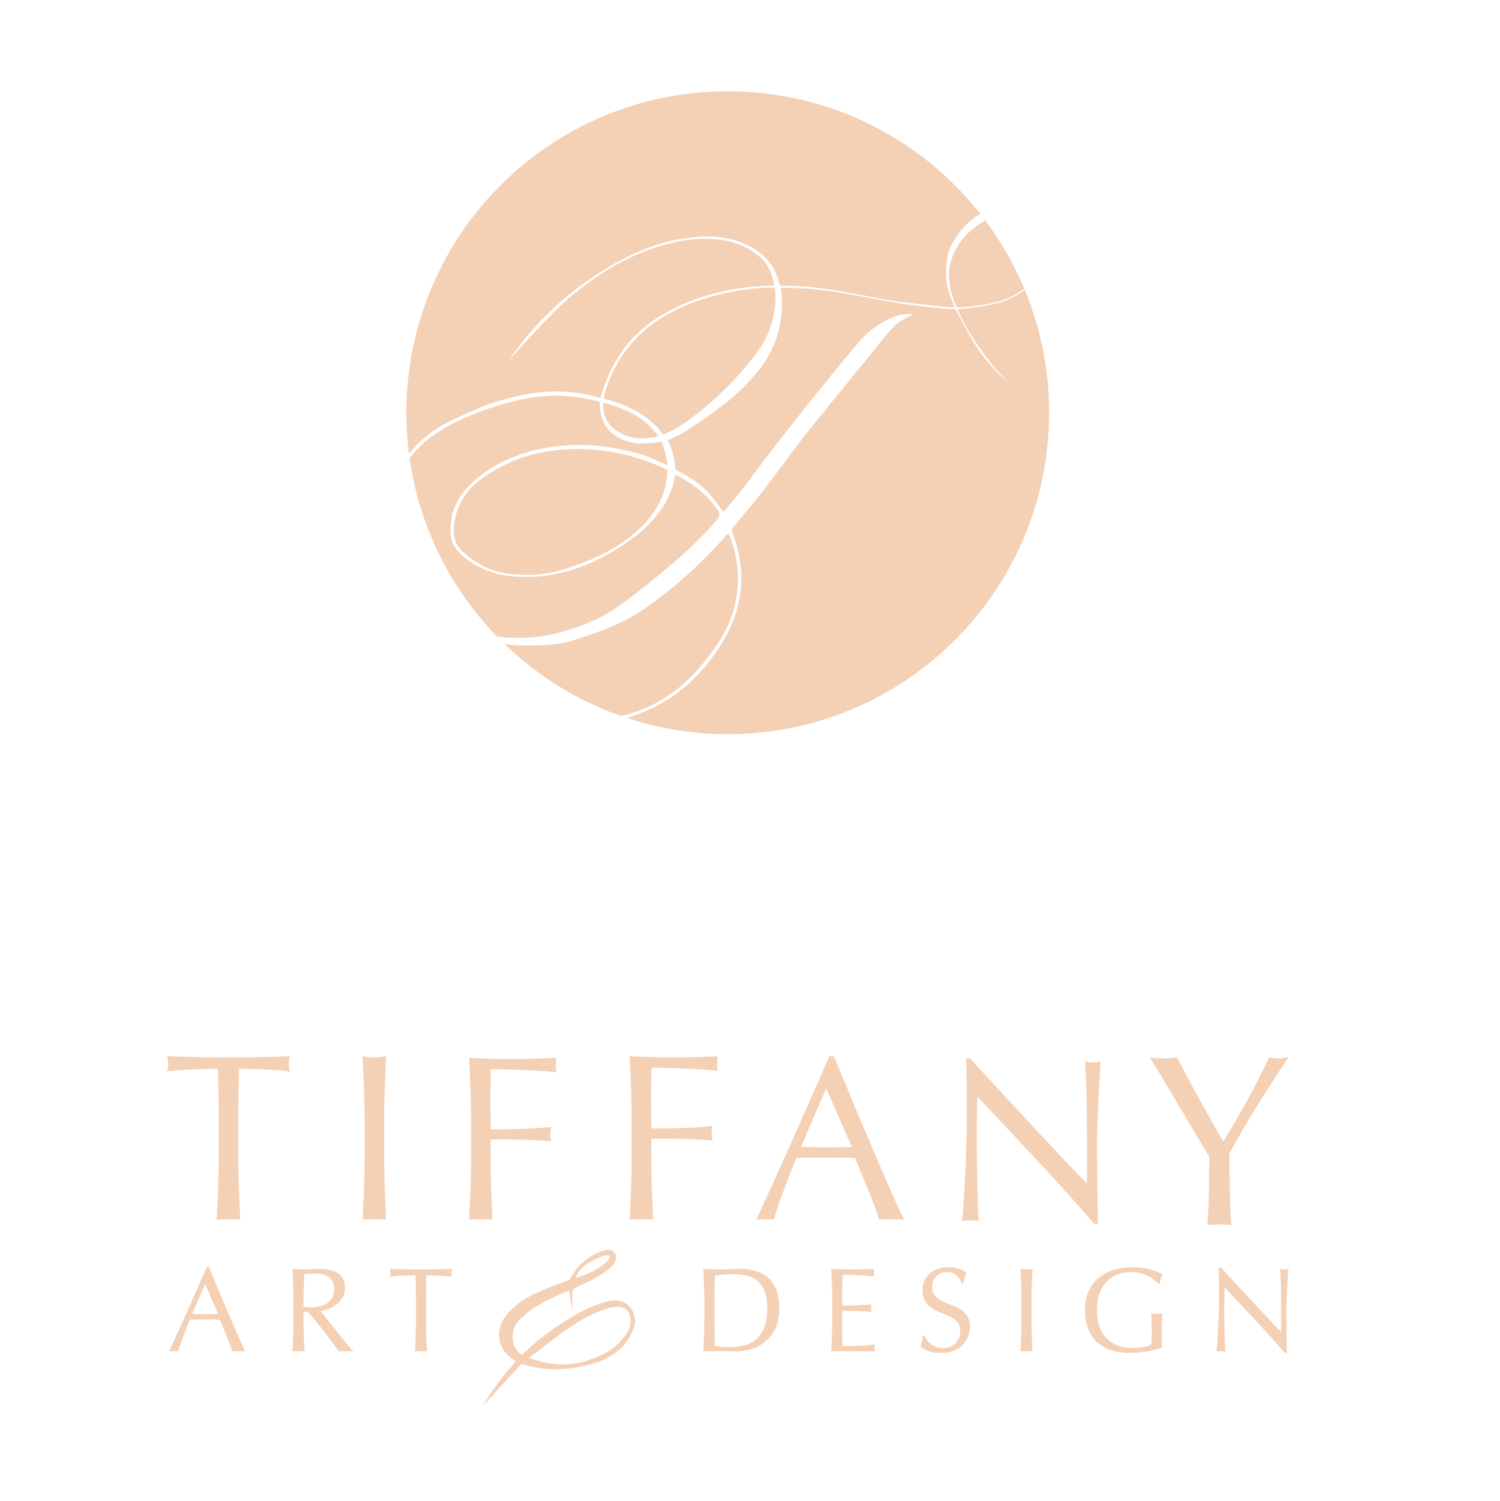 Tiffany Art & Design